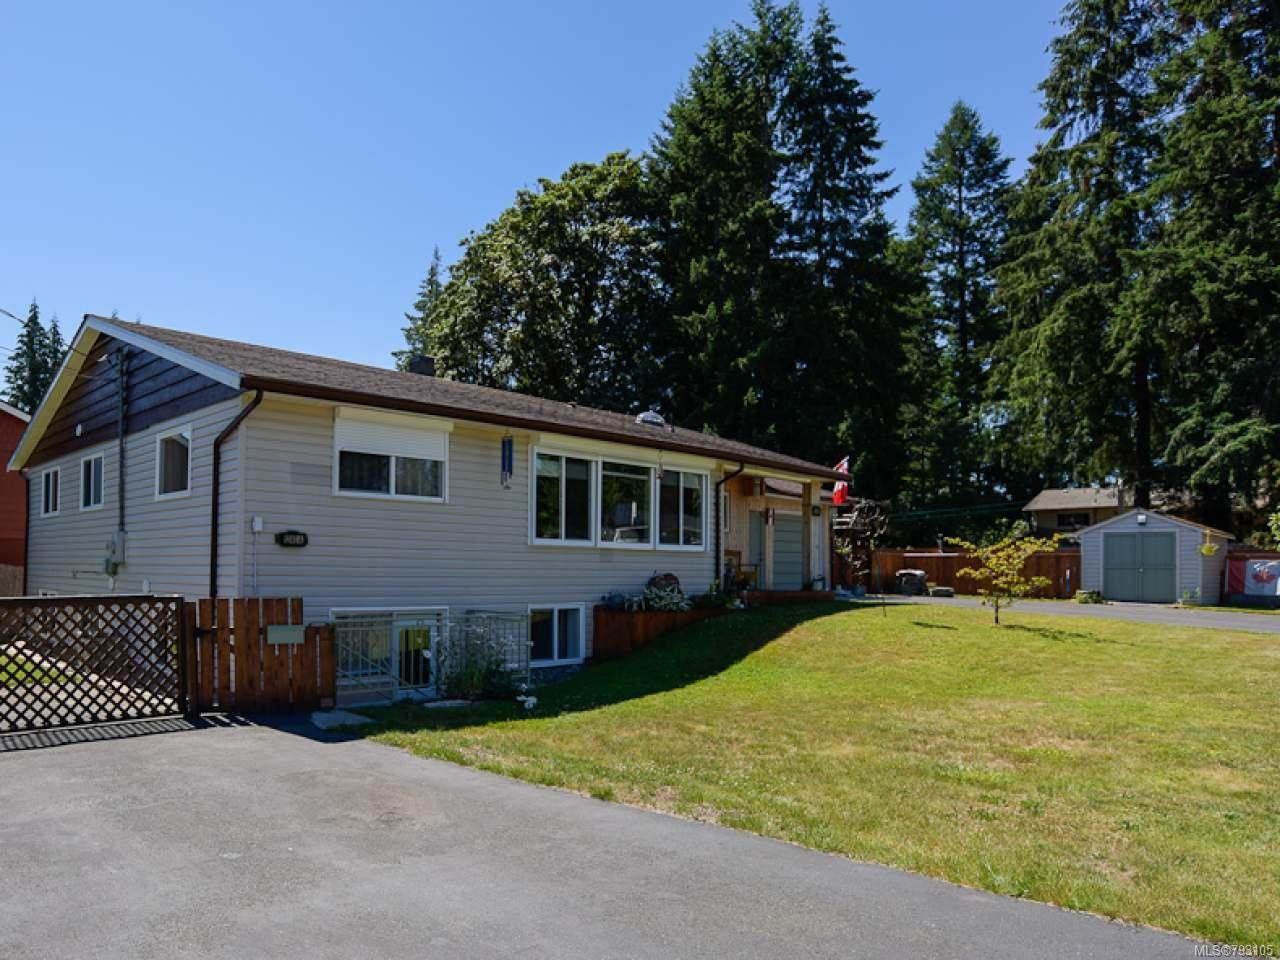 Main Photo: 1240 4TH STREET in COURTENAY: CV Courtenay City House for sale (Comox Valley)  : MLS®# 793105